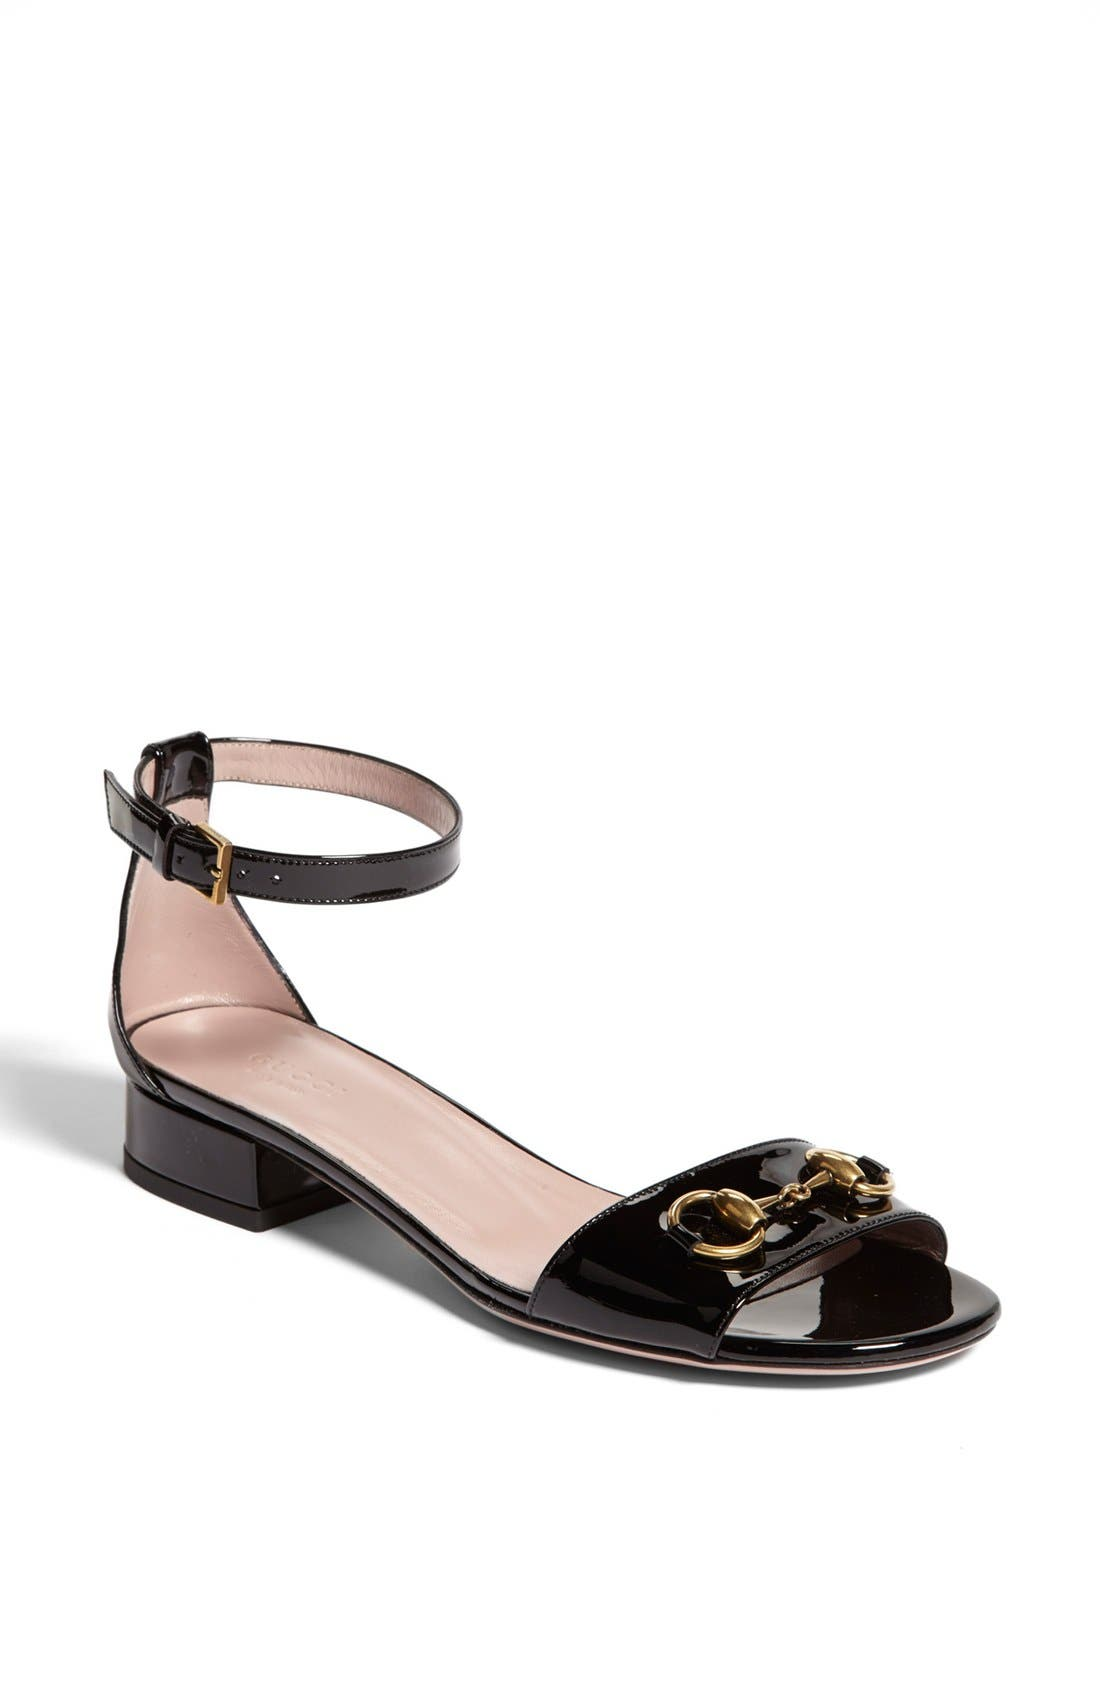 Alternate Image 1 Selected - Gucci 'Liliane' Ankle Strap Sandal